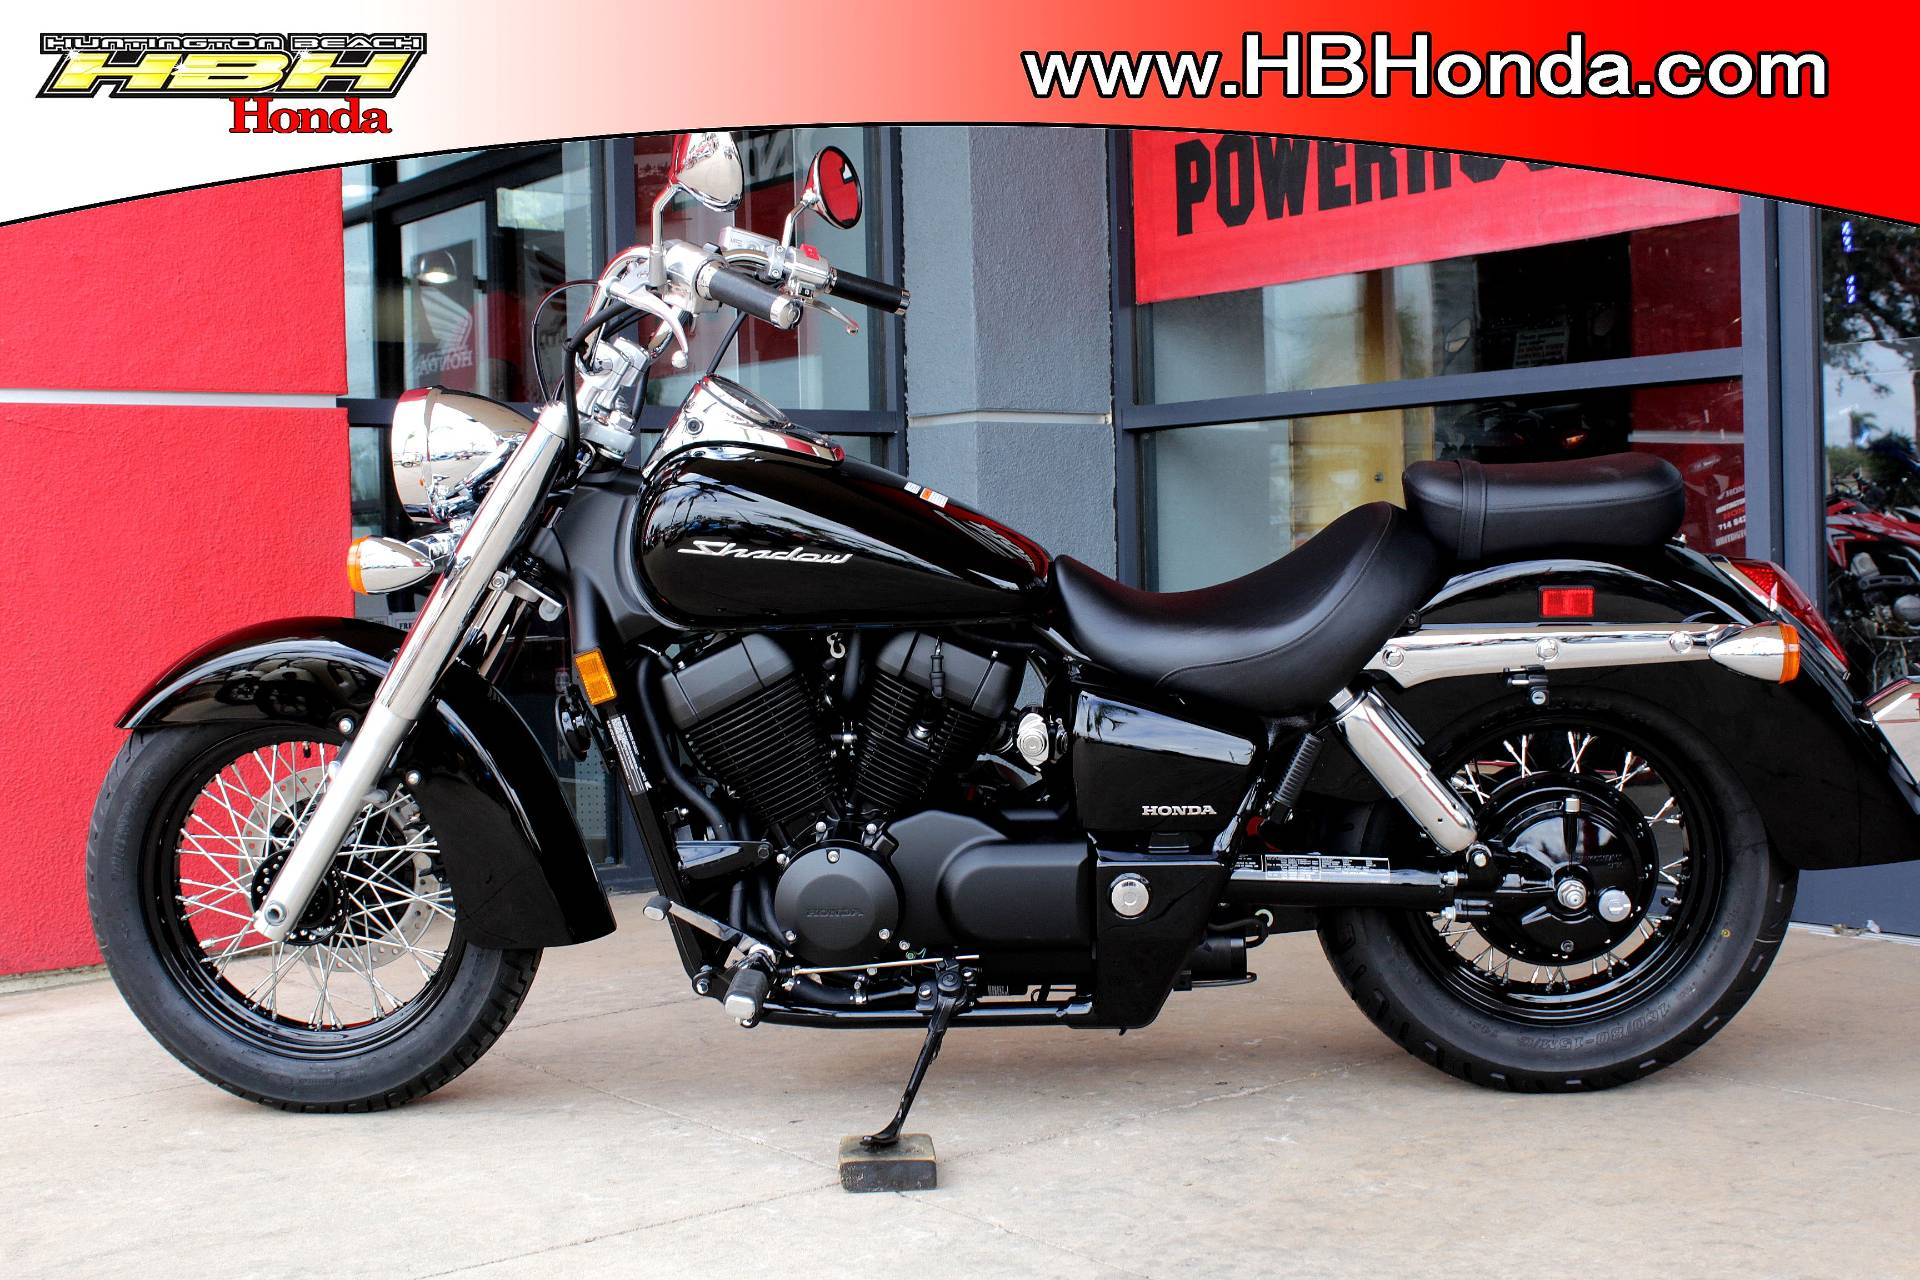 2019 Honda Shadow Aero 750 ABS in Huntington Beach, California - Photo 6